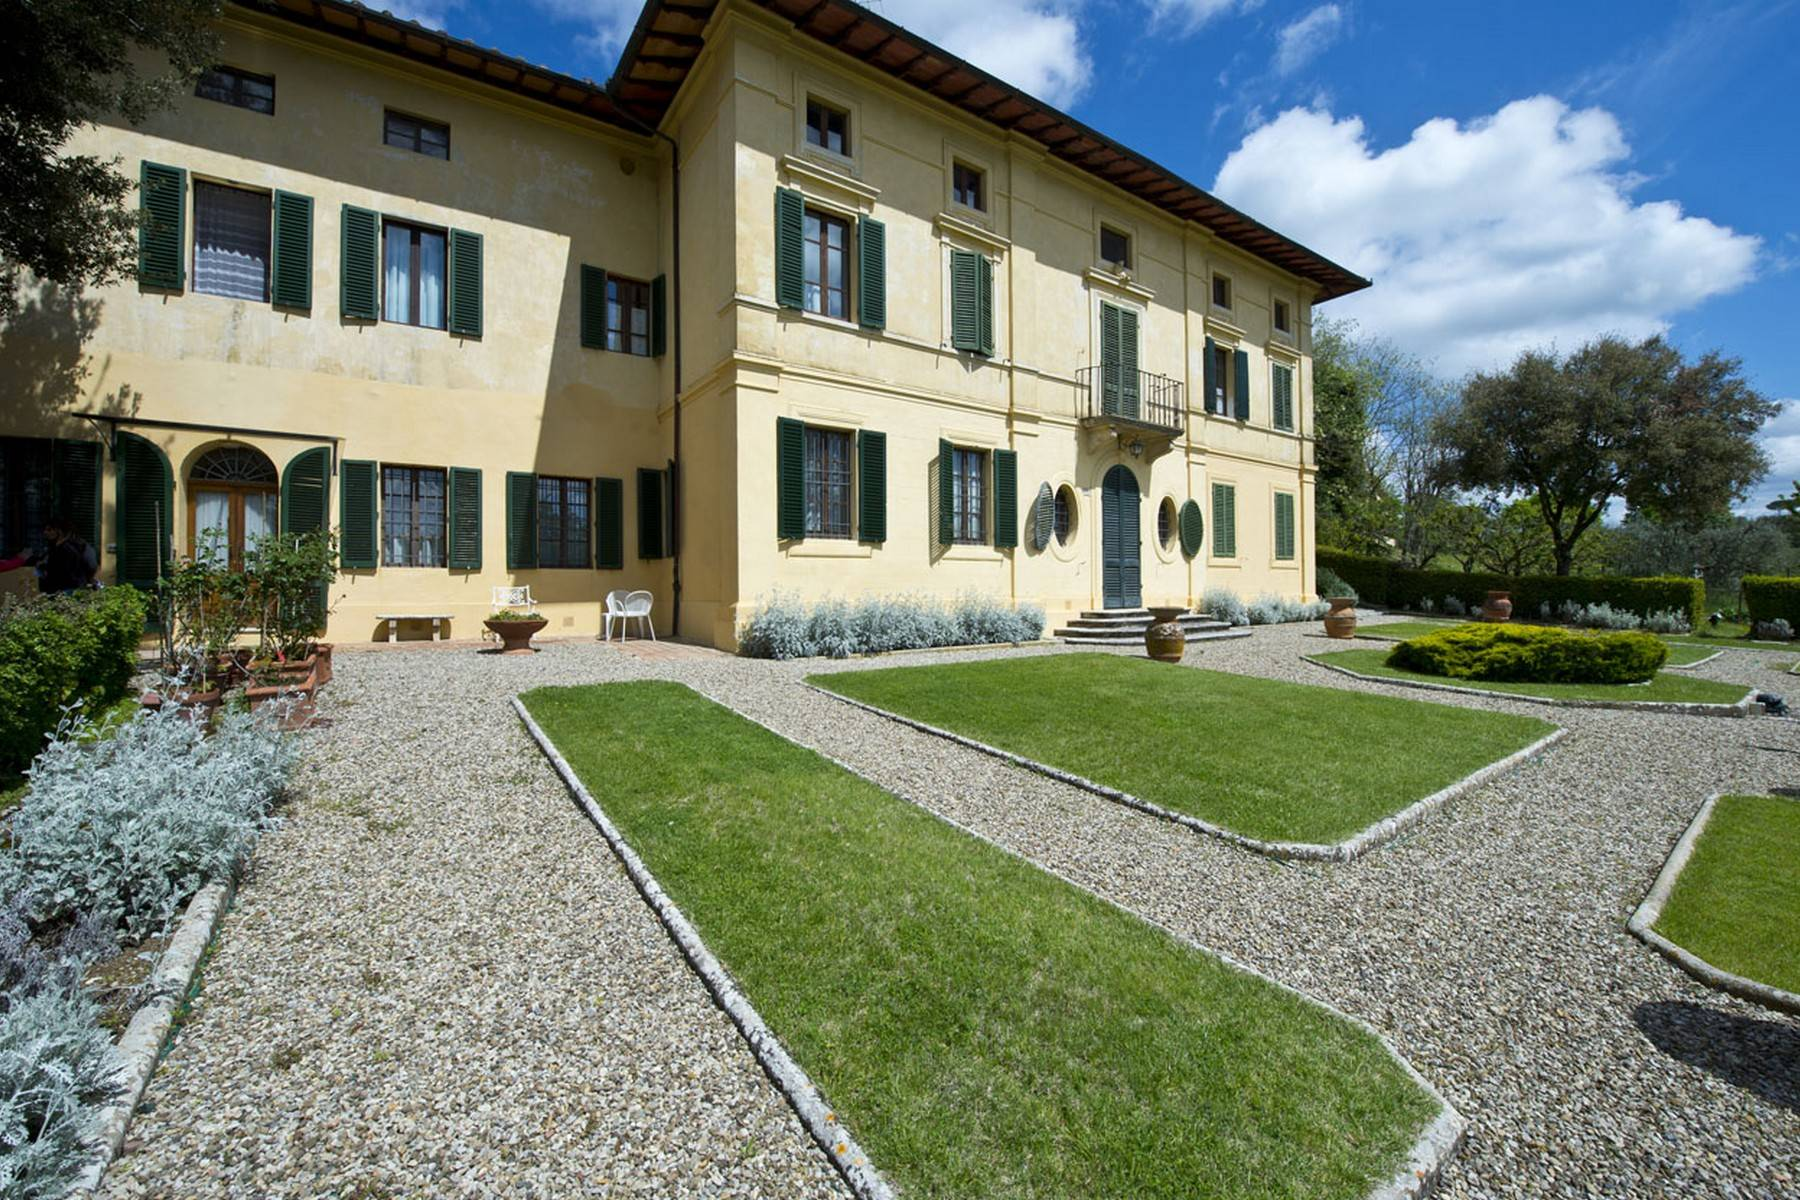 Aristocratic Villa for Sale on the Hills of Siena - 2